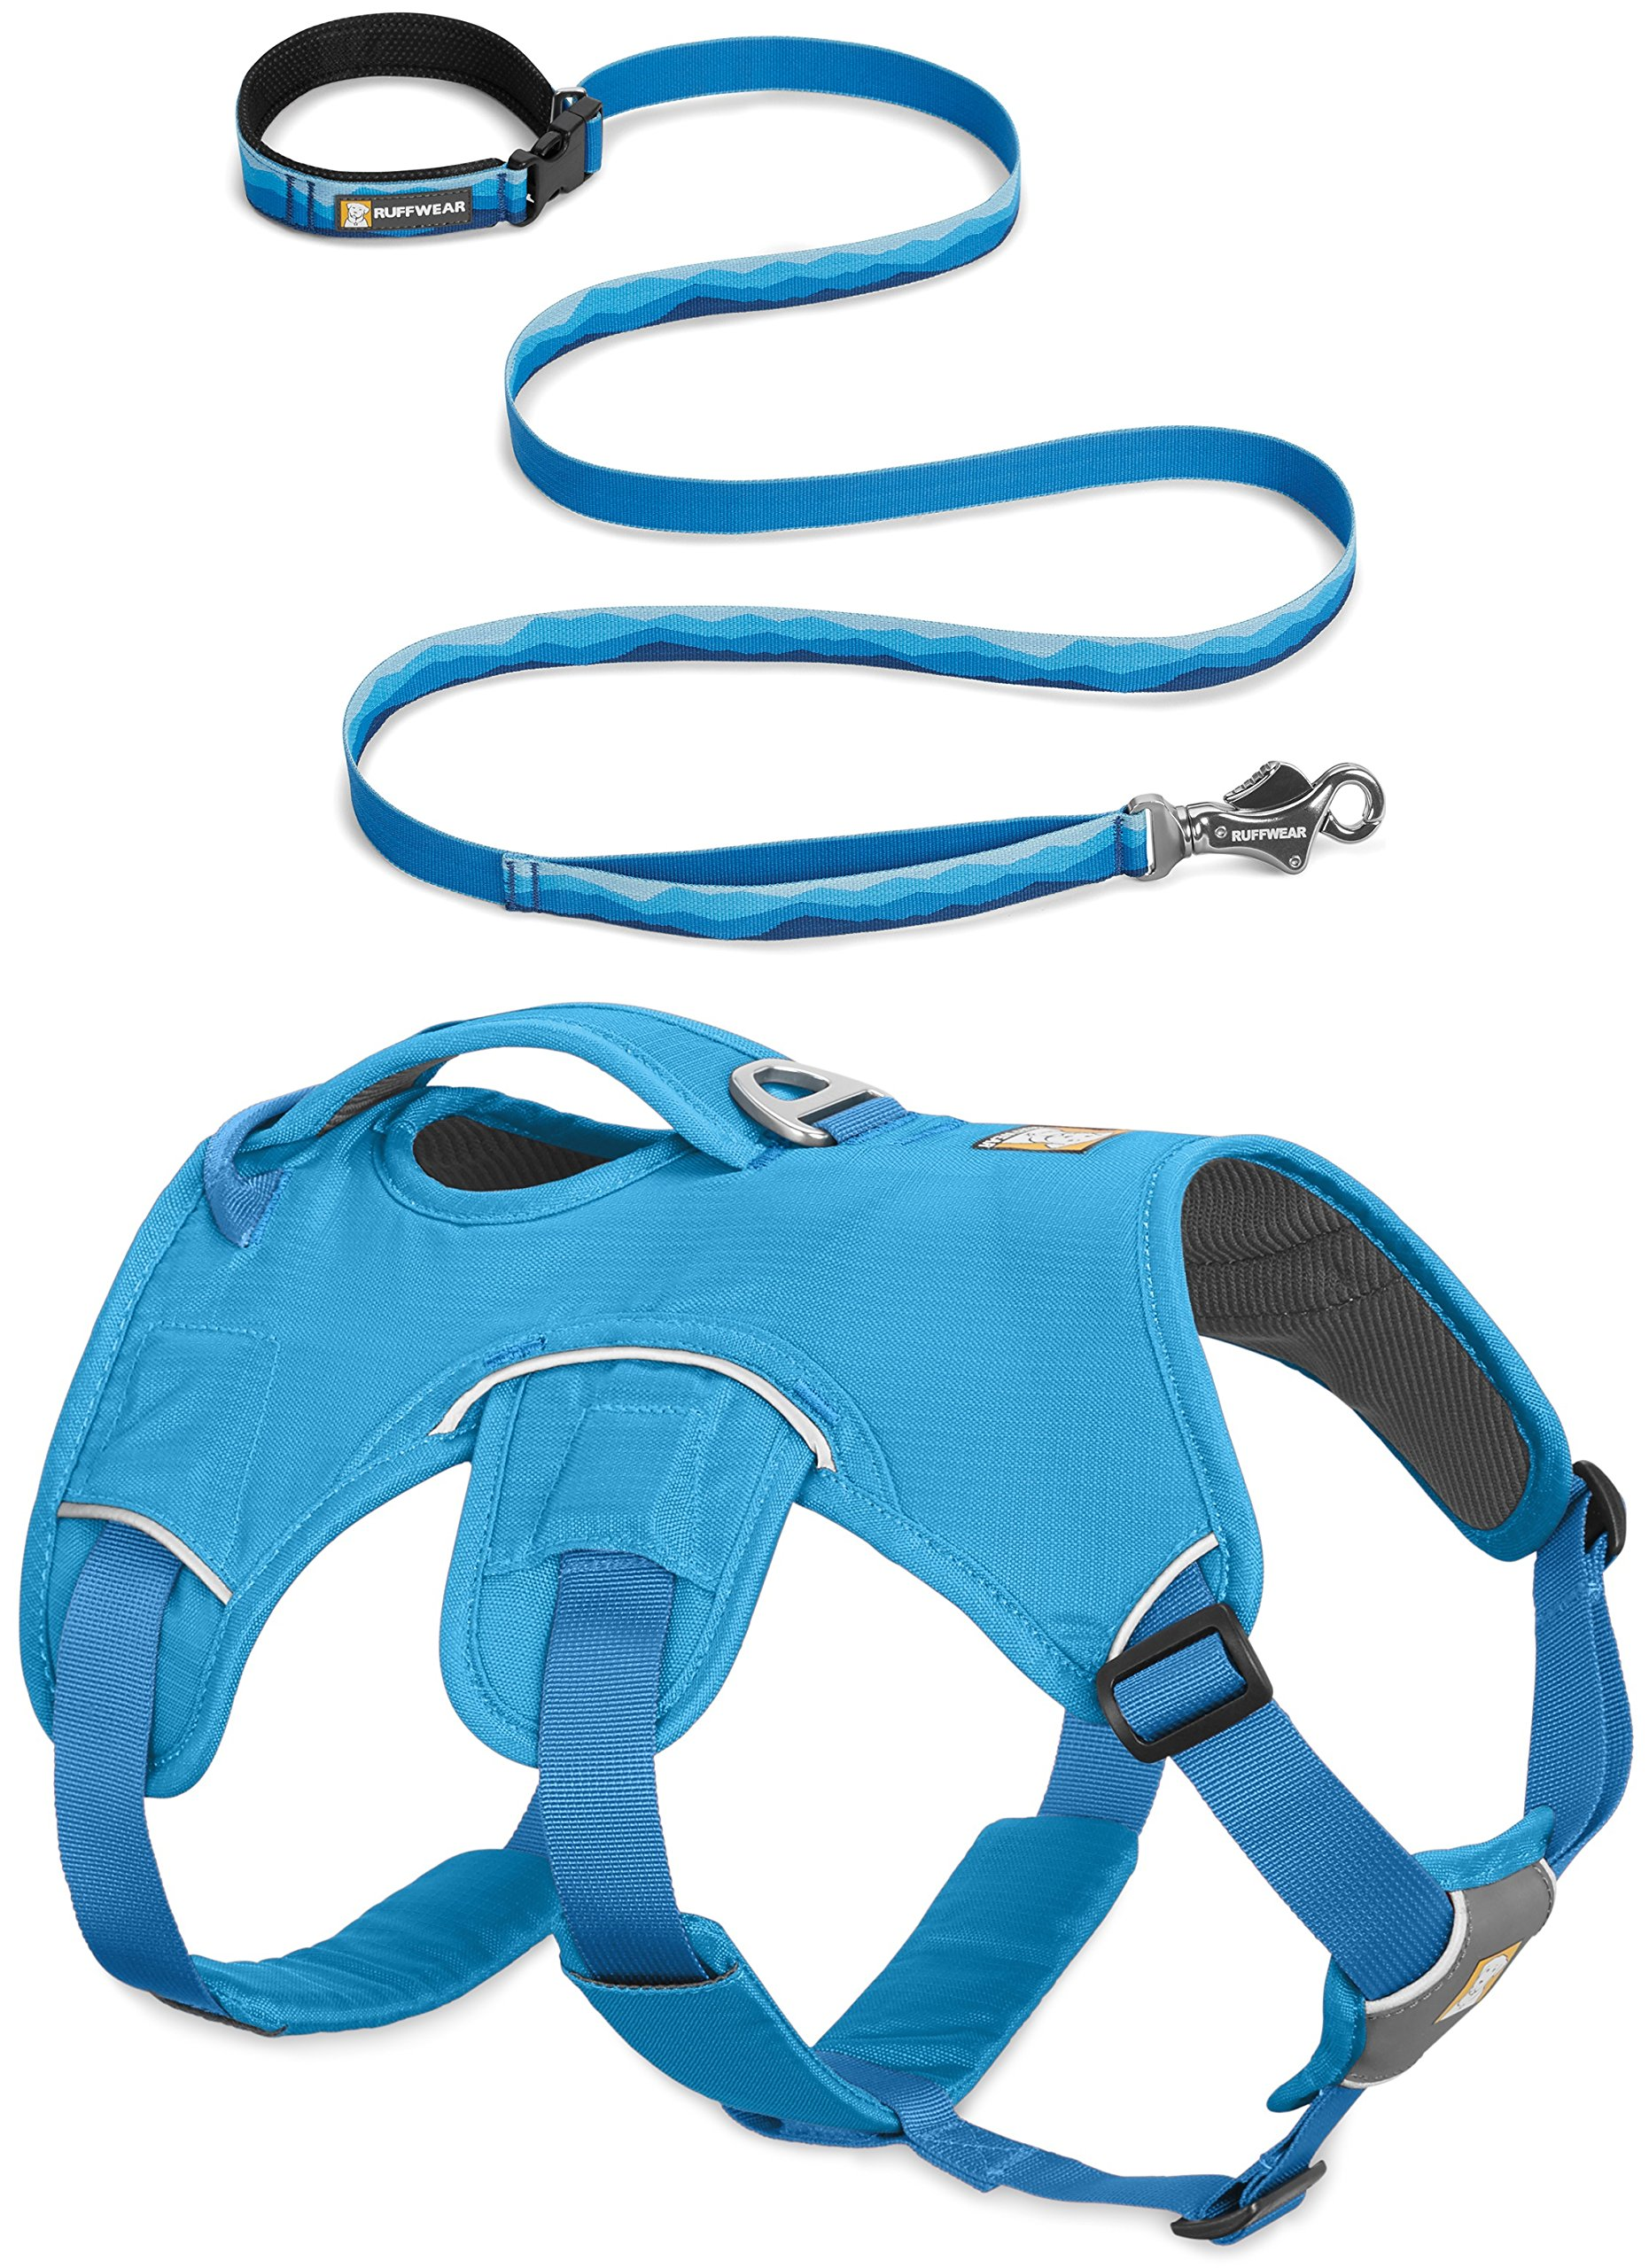 RUFFWEAR NEW 2017 BLUE WEB MASTER DOG HARNESS ♦ SECURE REFLECTIVE SUPPORTIVE MULTI USE ♦ ALL SIZES (Small)